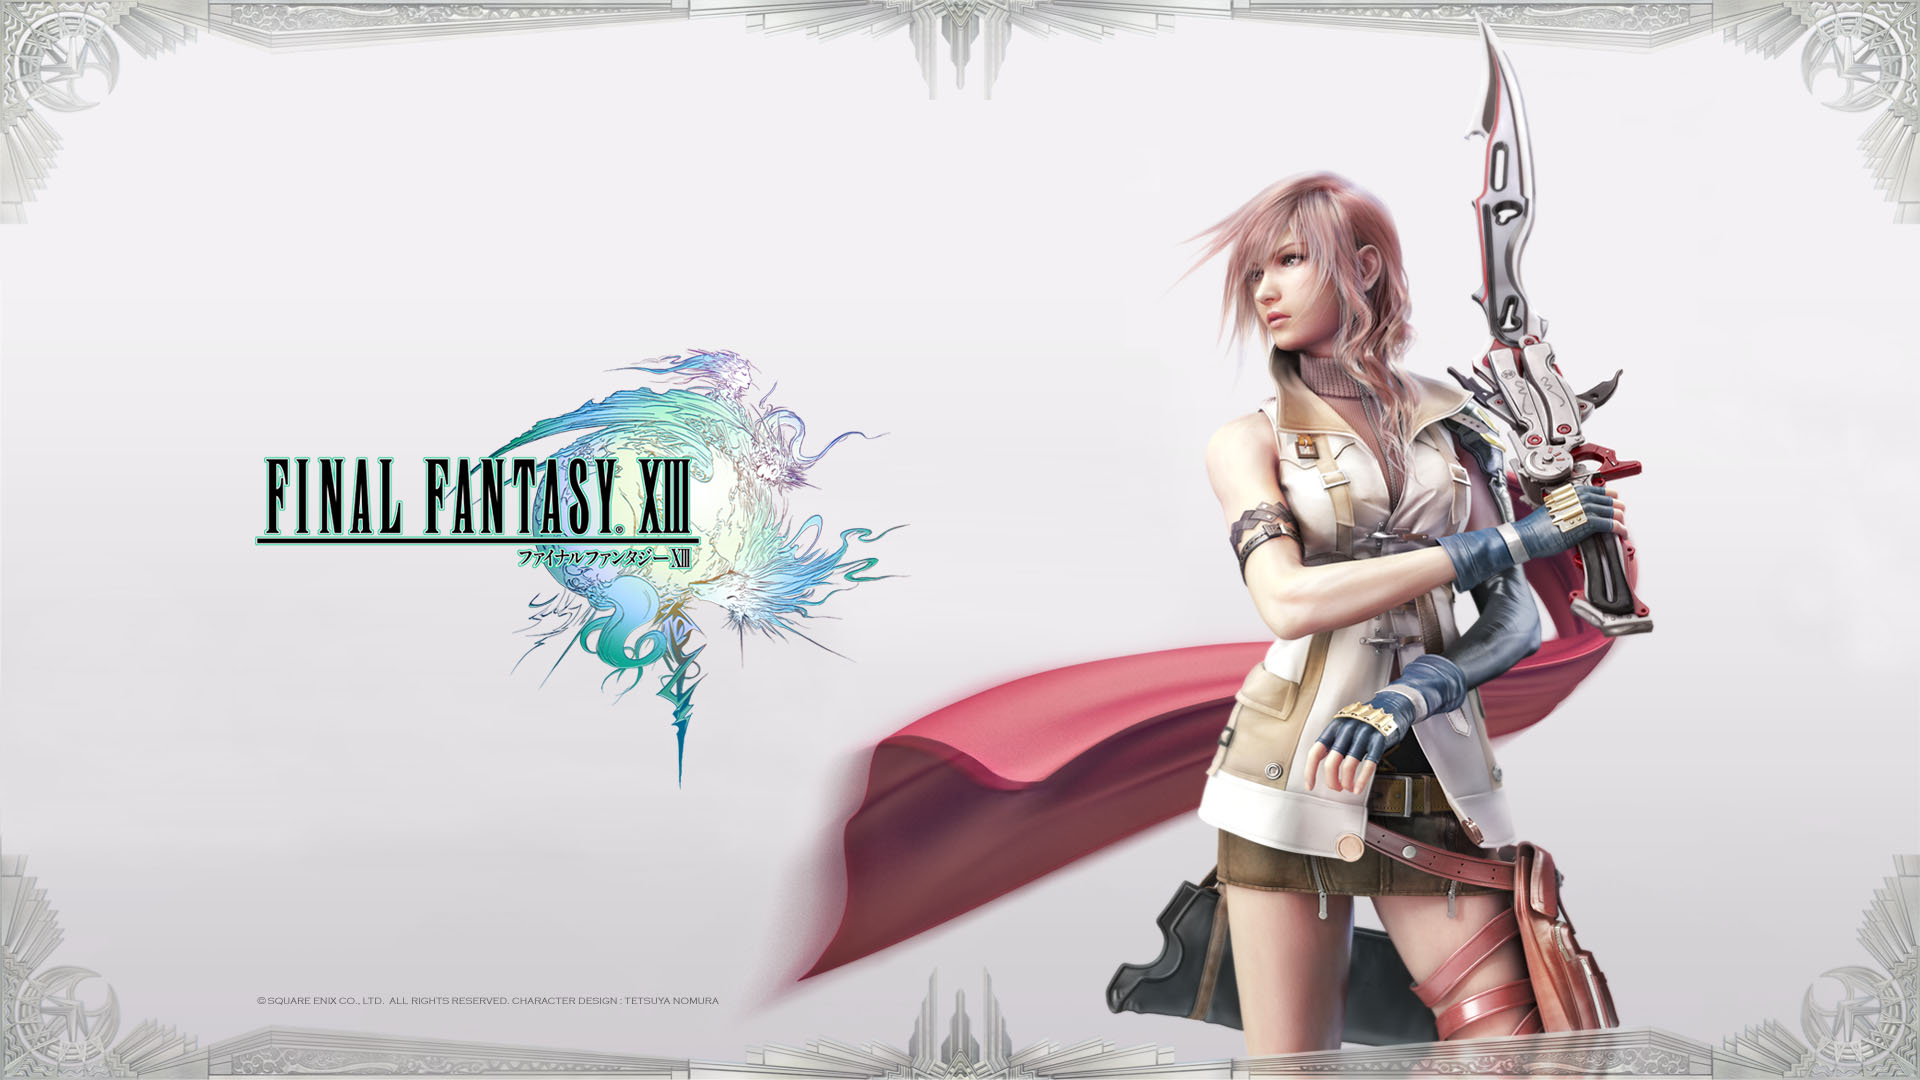 final fantasy wallpaper, final fantasy 7 wallpapers, final fantasy 13 wallpaper, final fantasy x wallpapers, final fantasy 8 wallpapers, final fantasy wallpapers hd-51